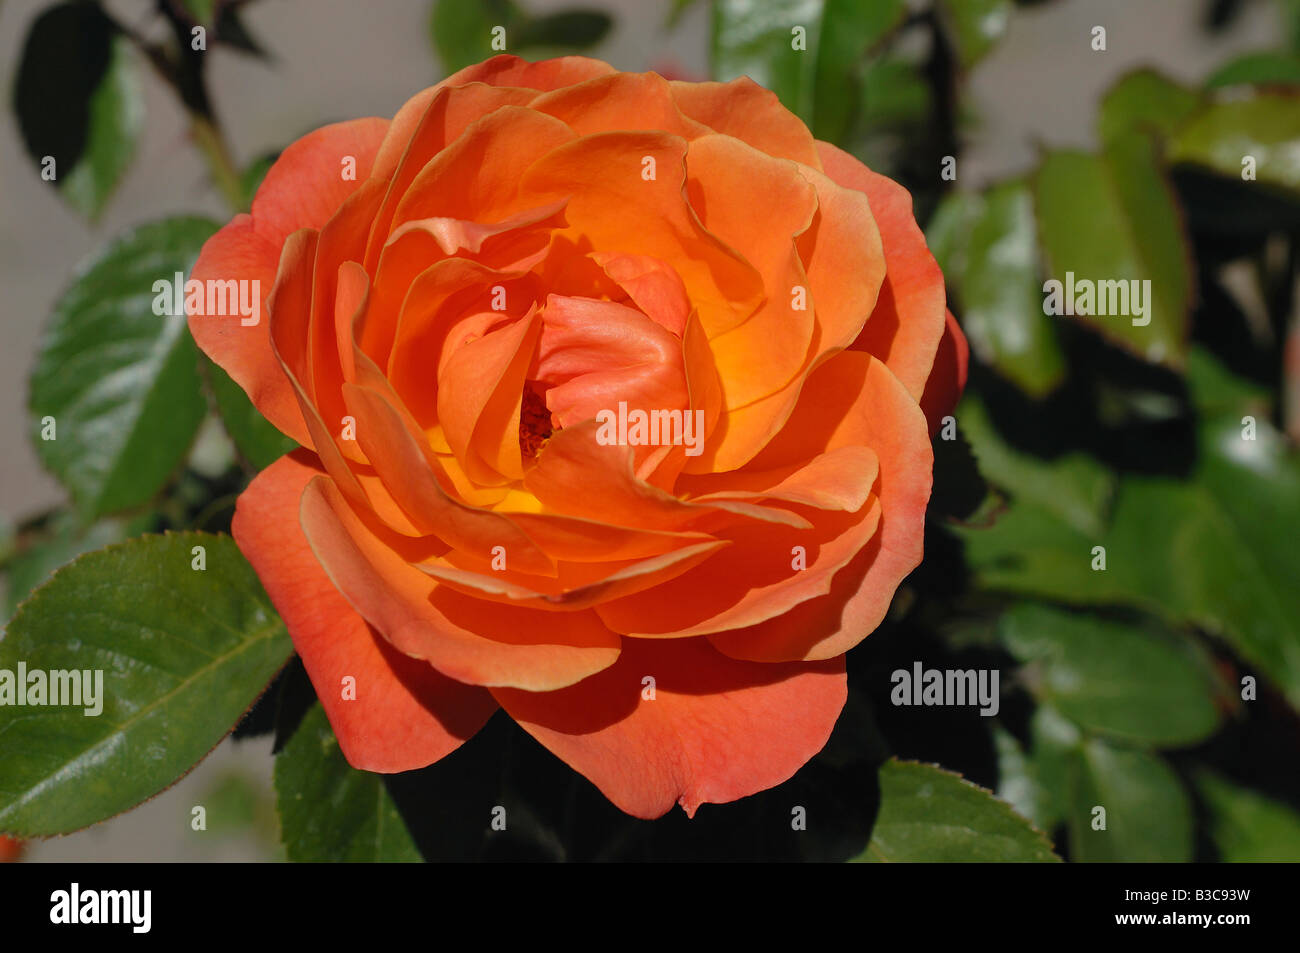 Orange coloured rose at Julia Davis Park, The Rose Garden, Boise, Idaho - Stock Image